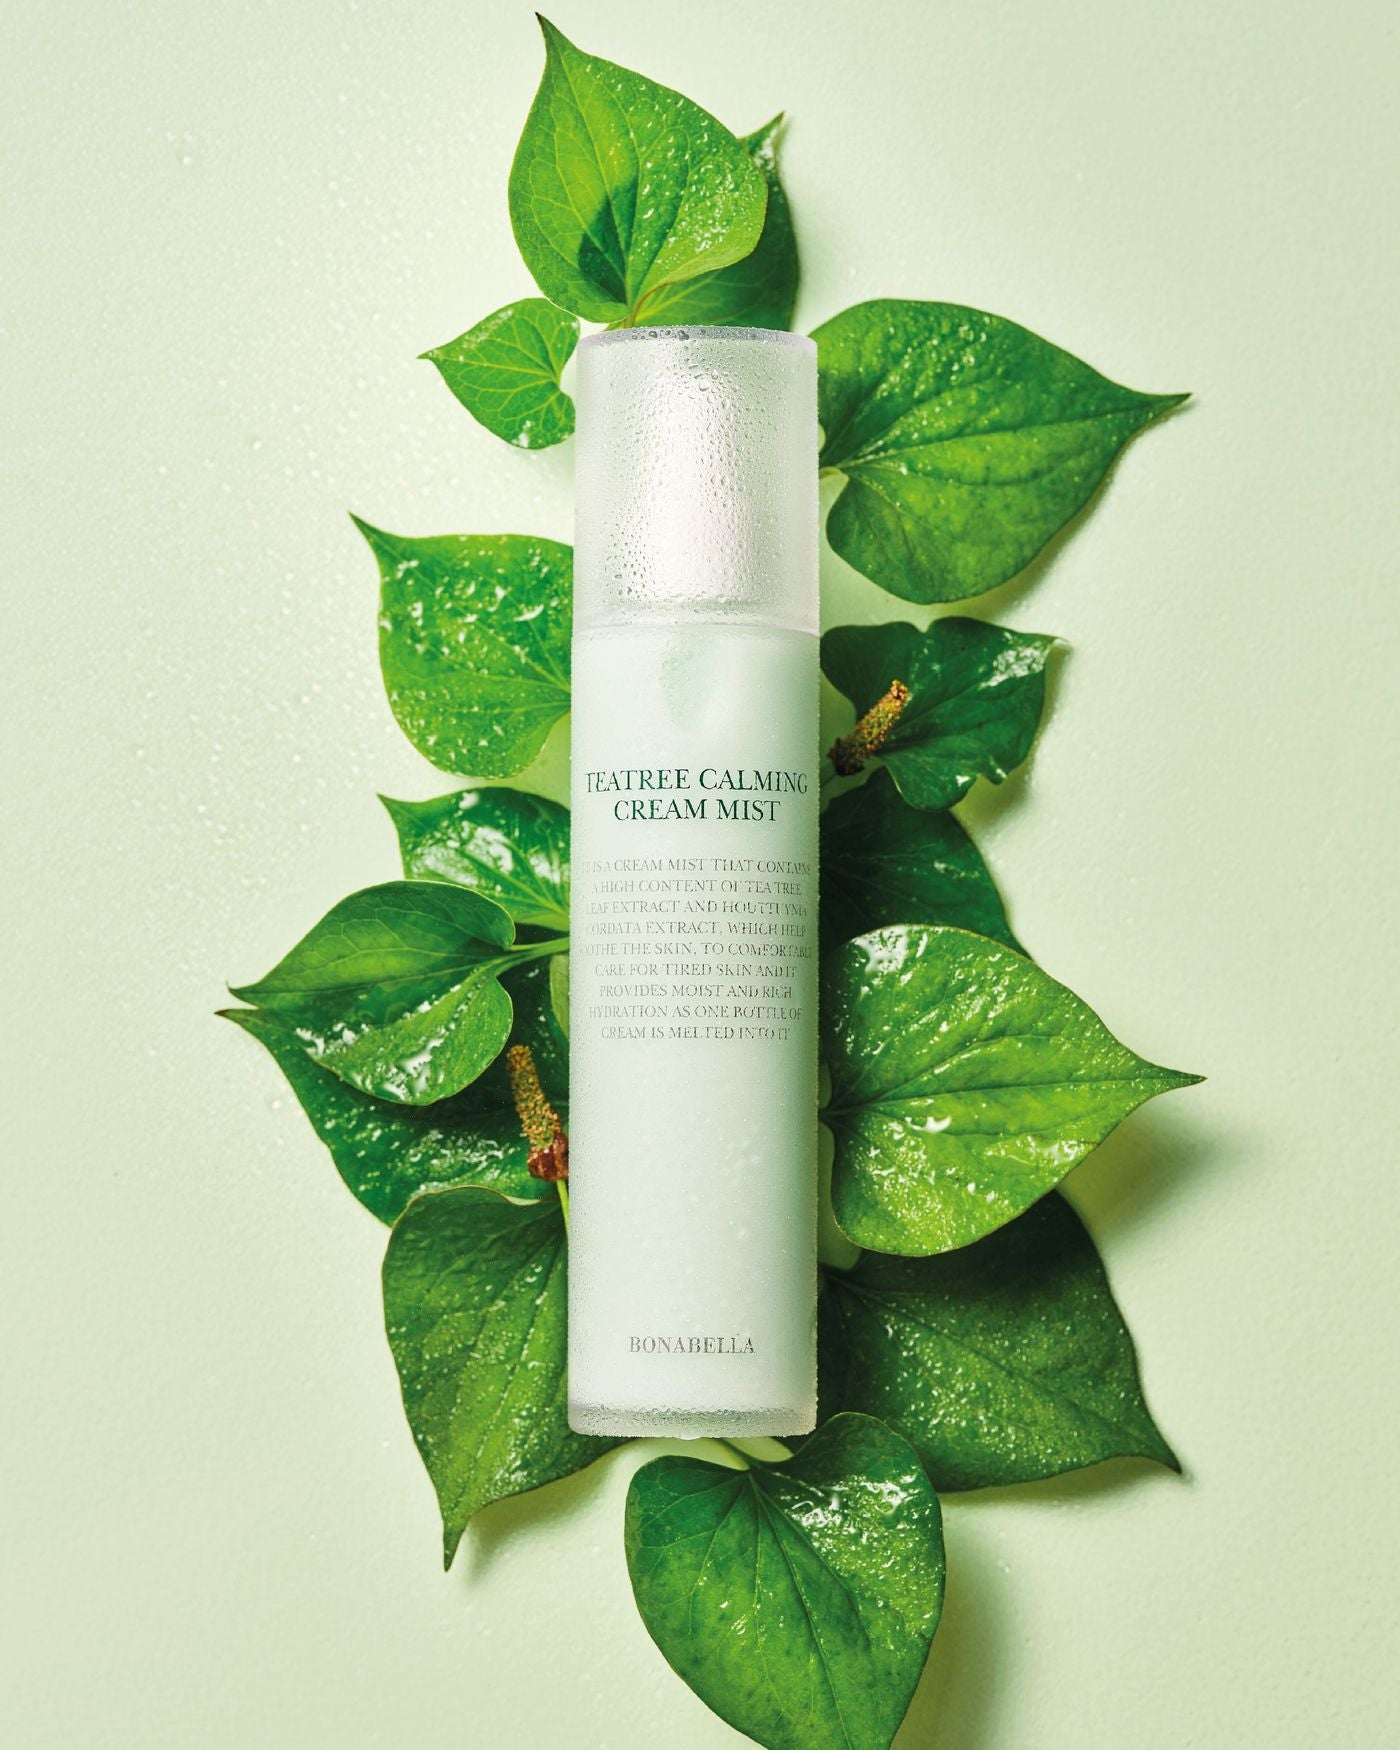 Teatree Calming Cream Mist